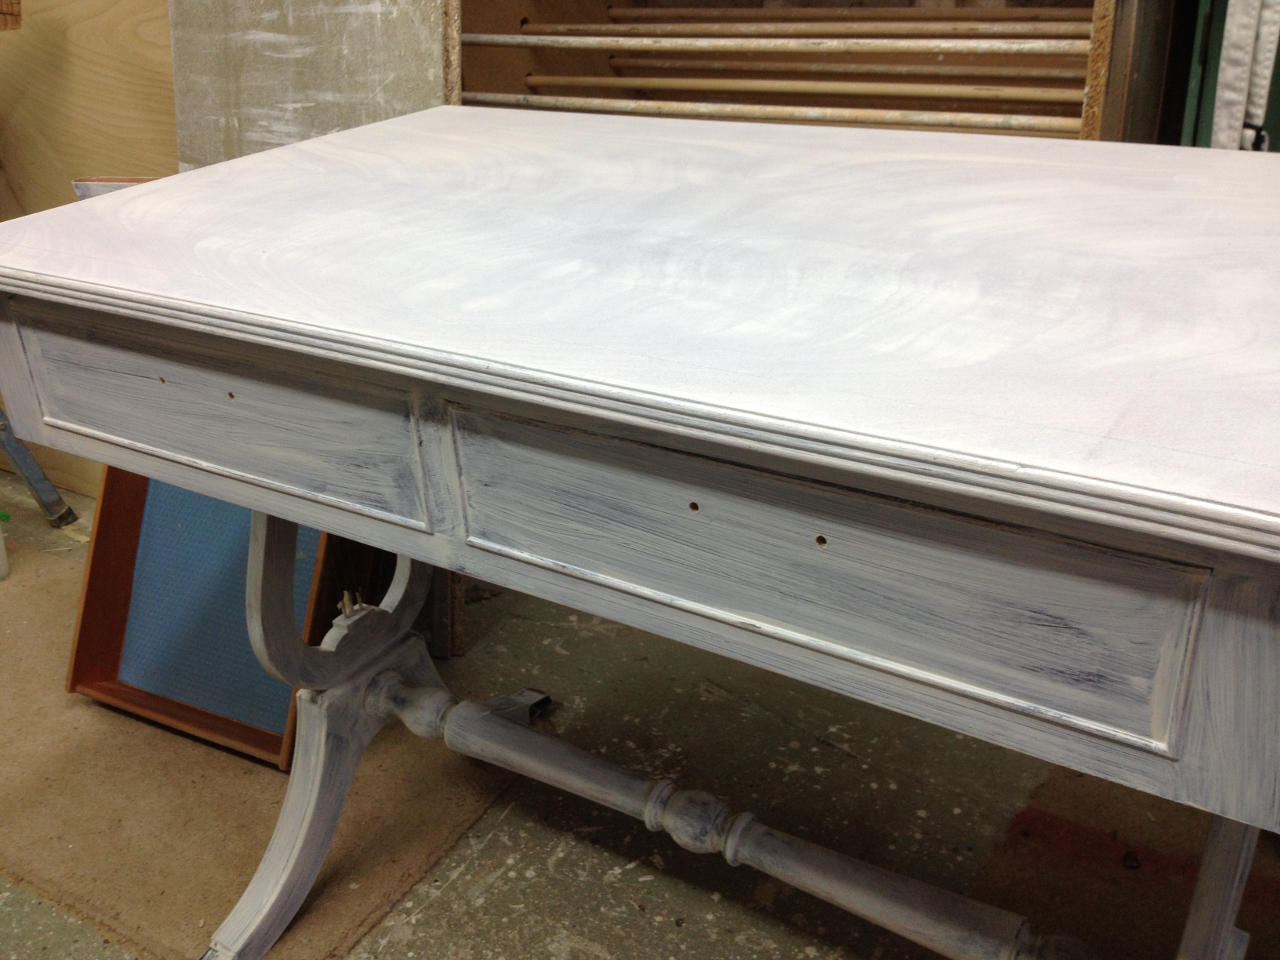 Rubbed down table